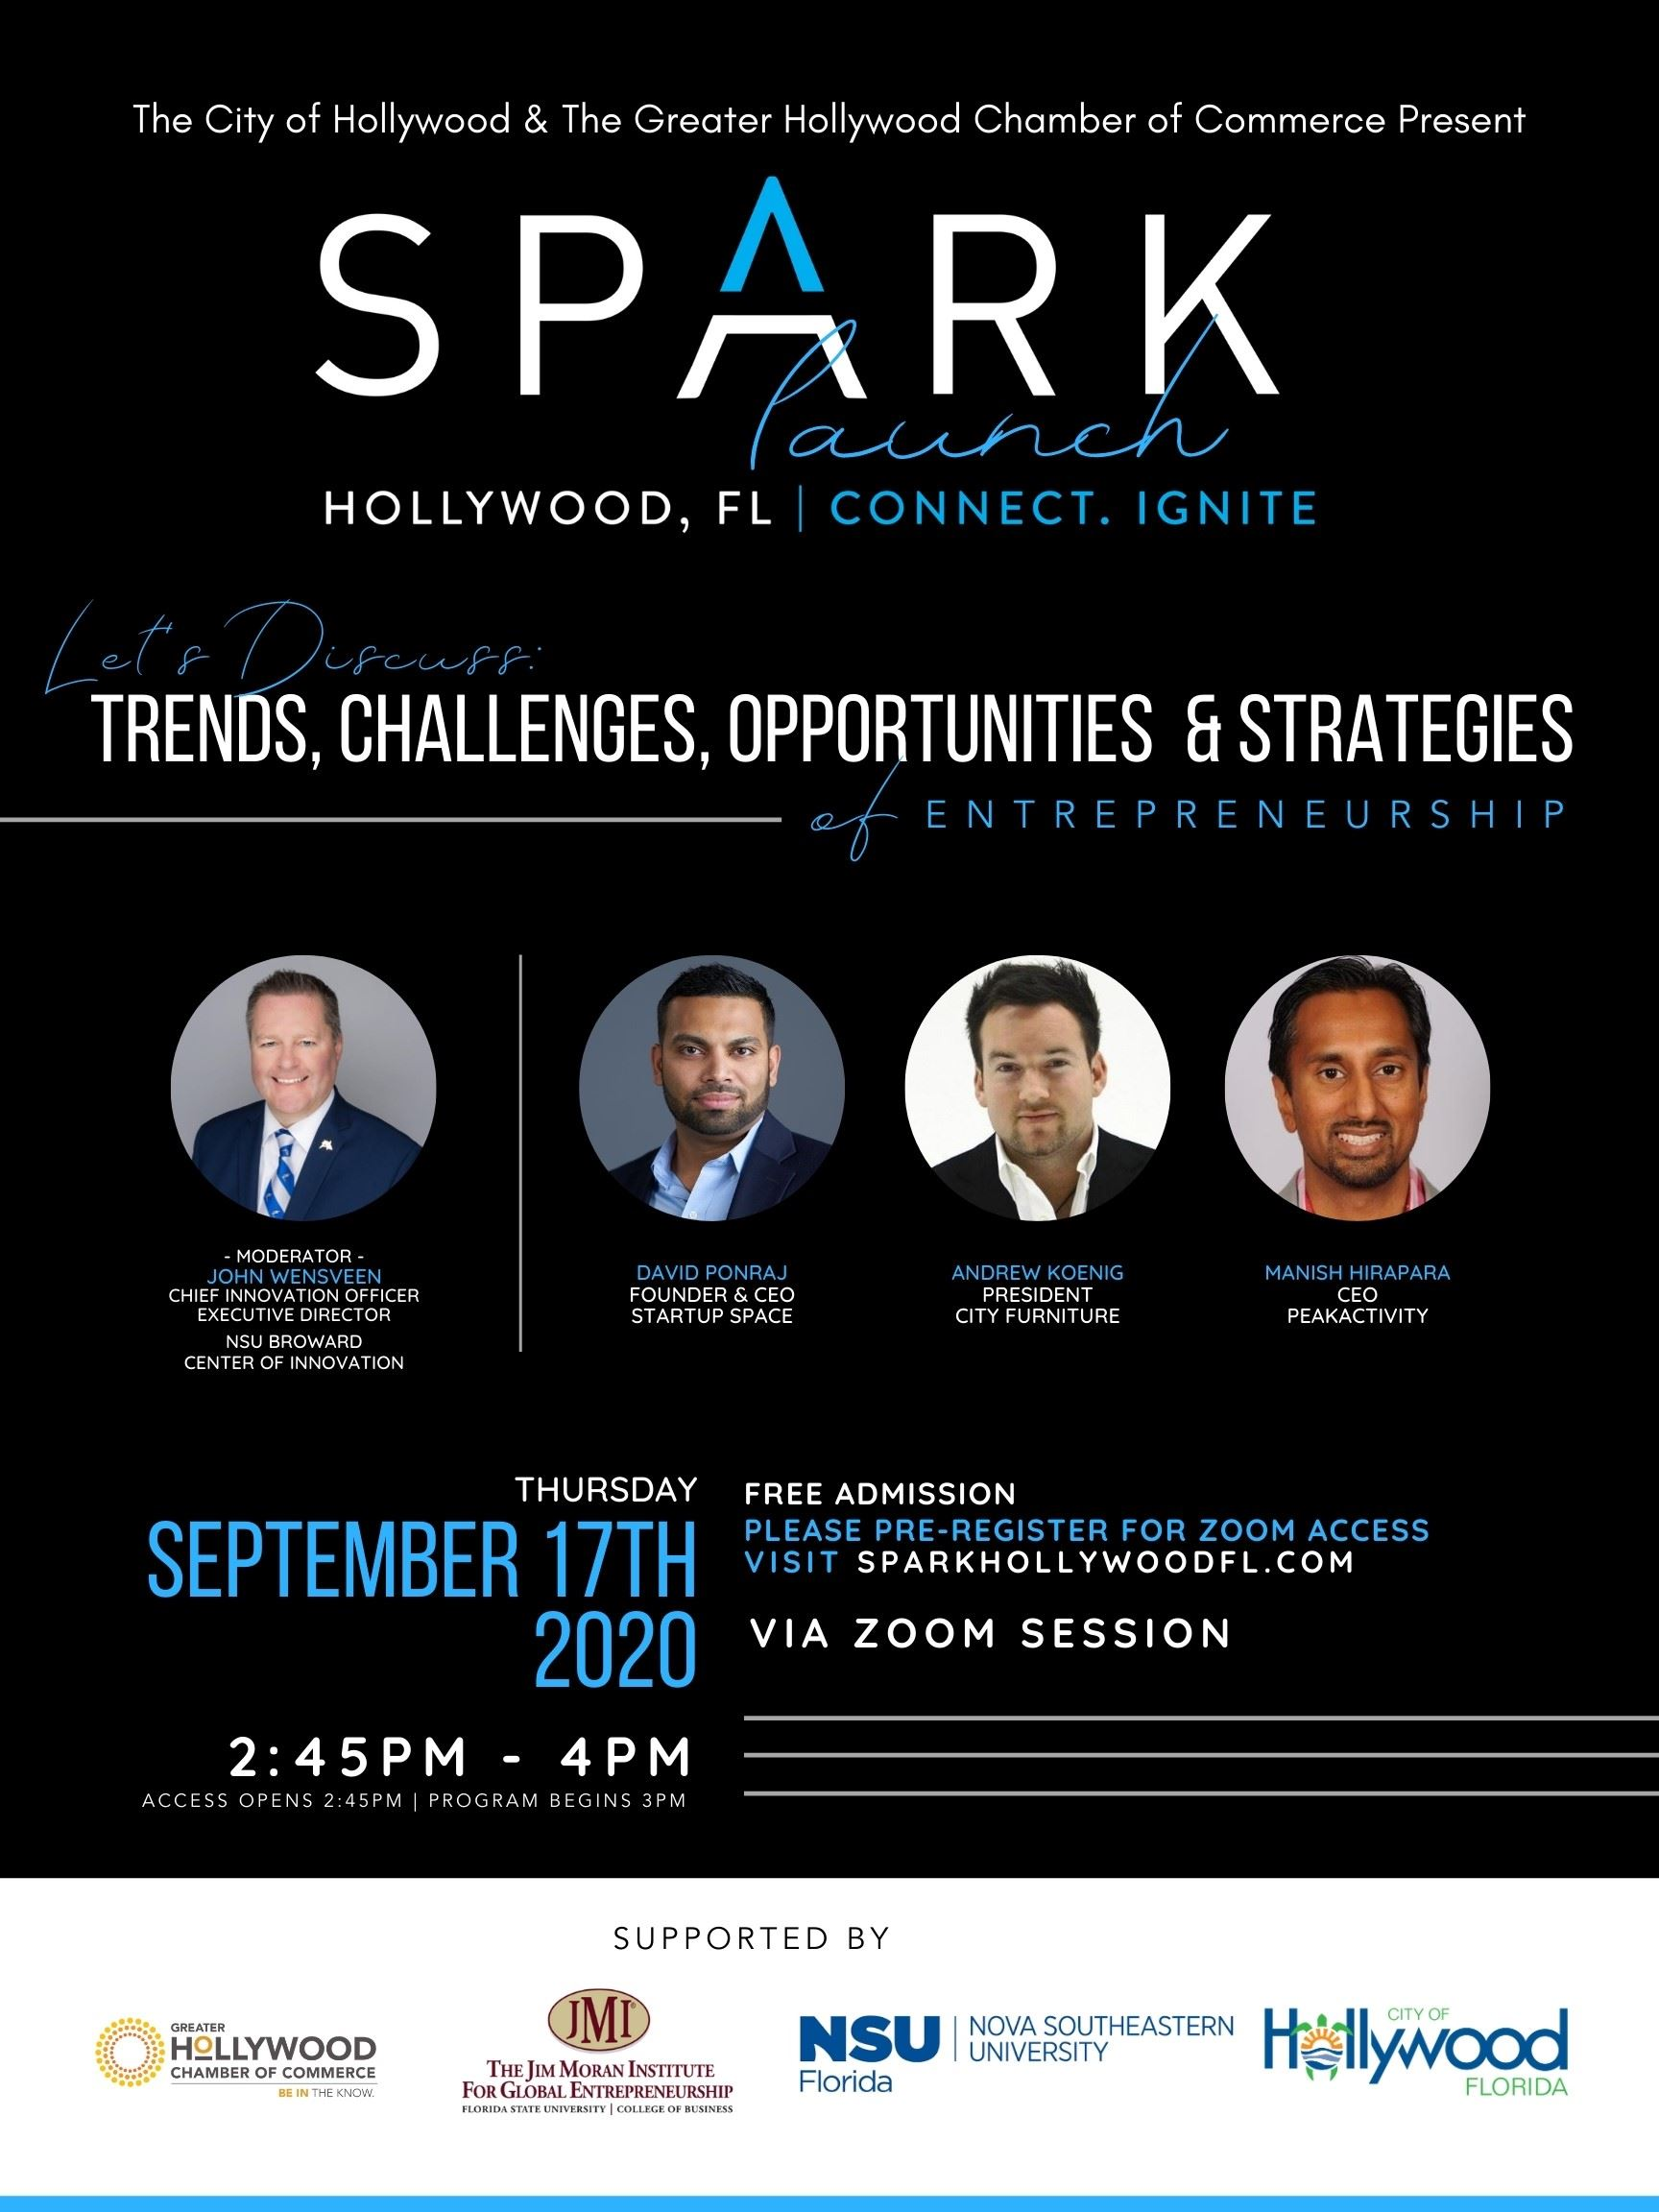 SPARK Hollywood - Launch Event